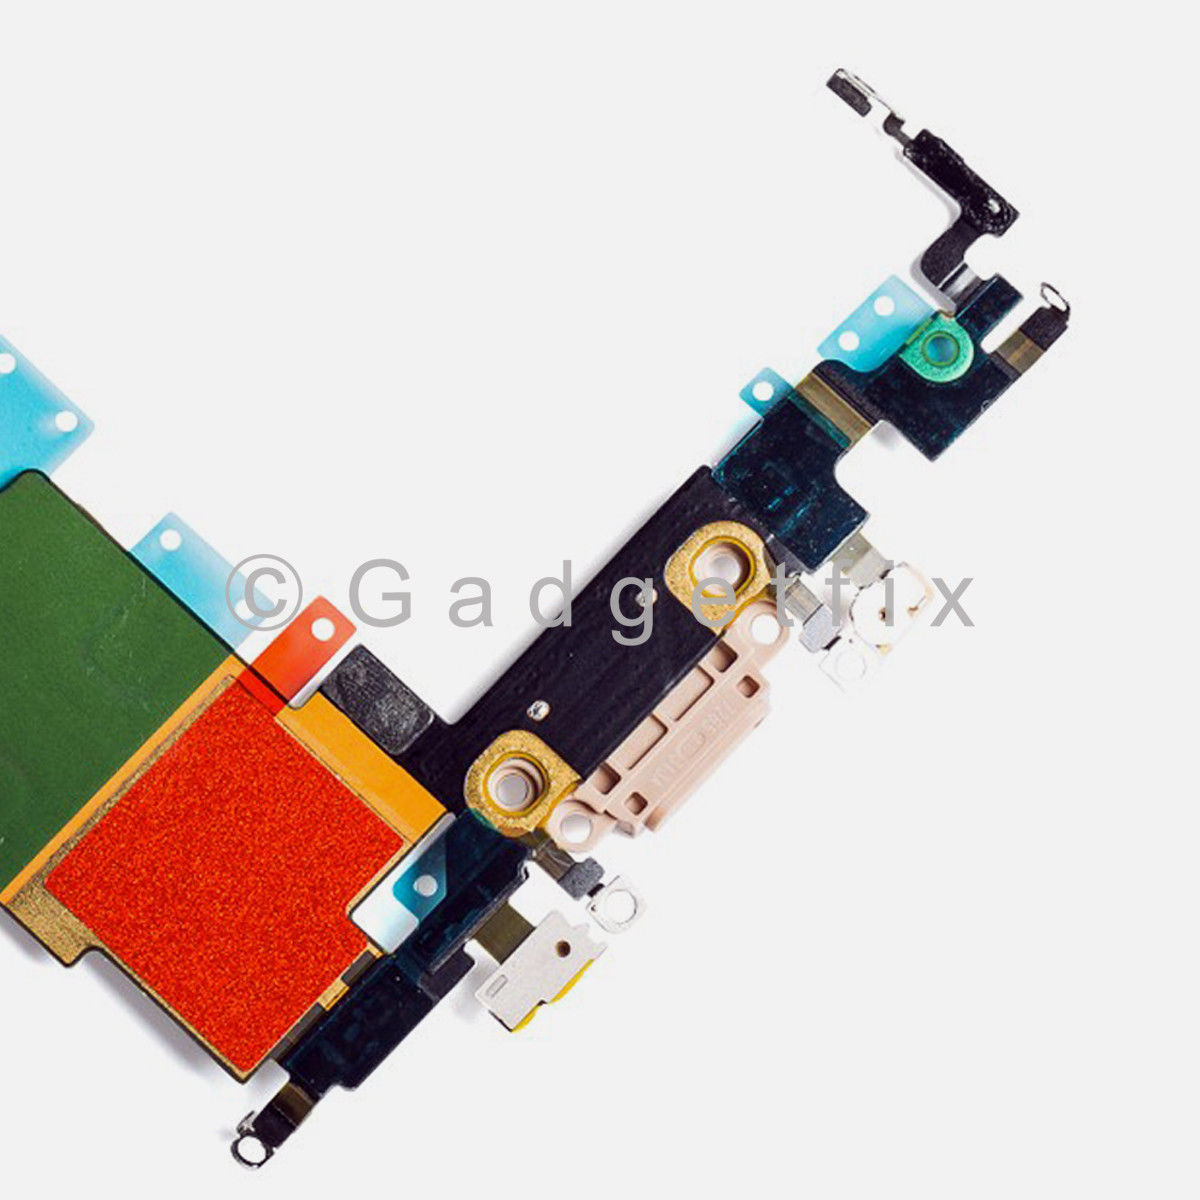 Gold Lightning Charger Charging Port Dock Flex Cable Replacement For iPhone 8